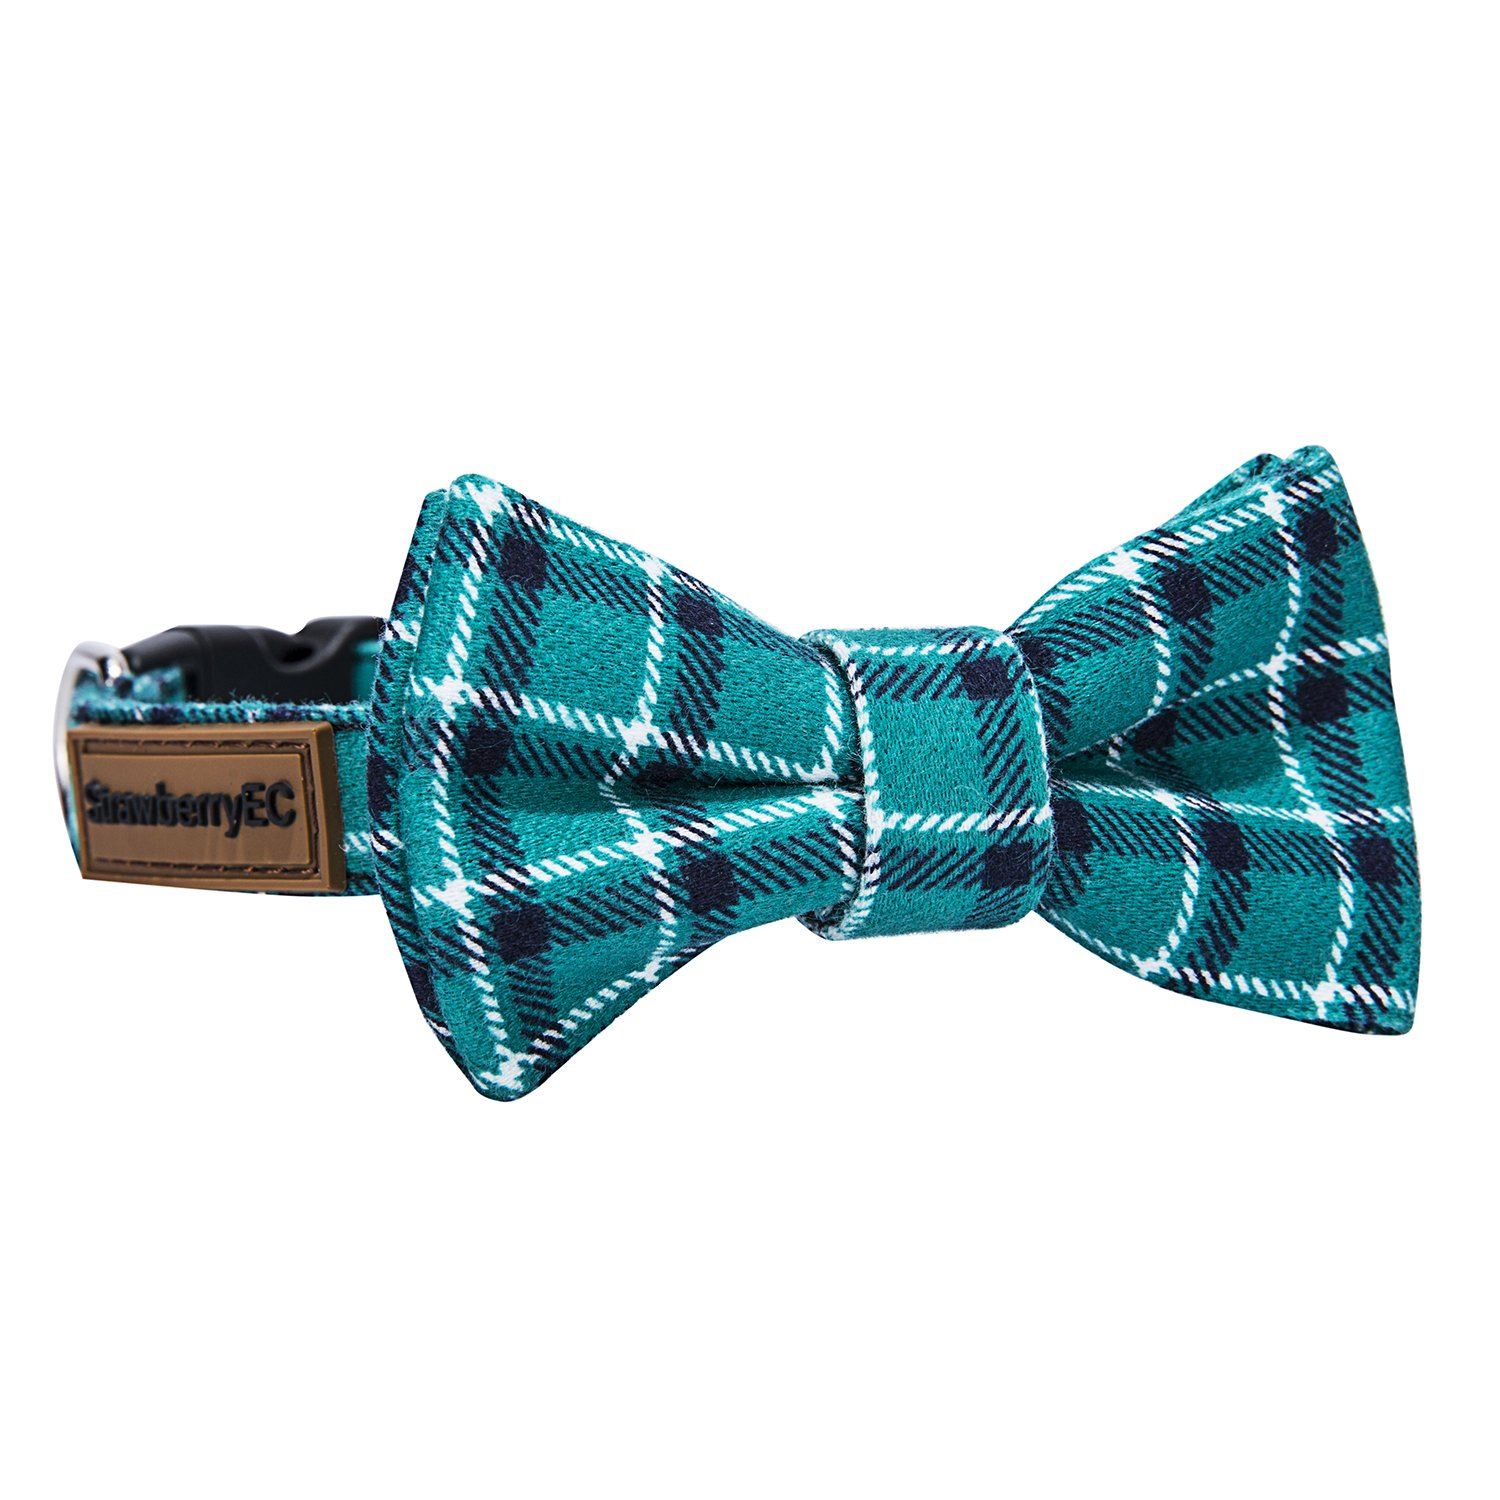 Peacock Green Medium Peacock Green Medium Adjustable Collar for Medium Dogs. Cute Unique Plaid of Durable Polyester Fabric Blend. for Male and Female from StawberryEC (M, Peacock Green)